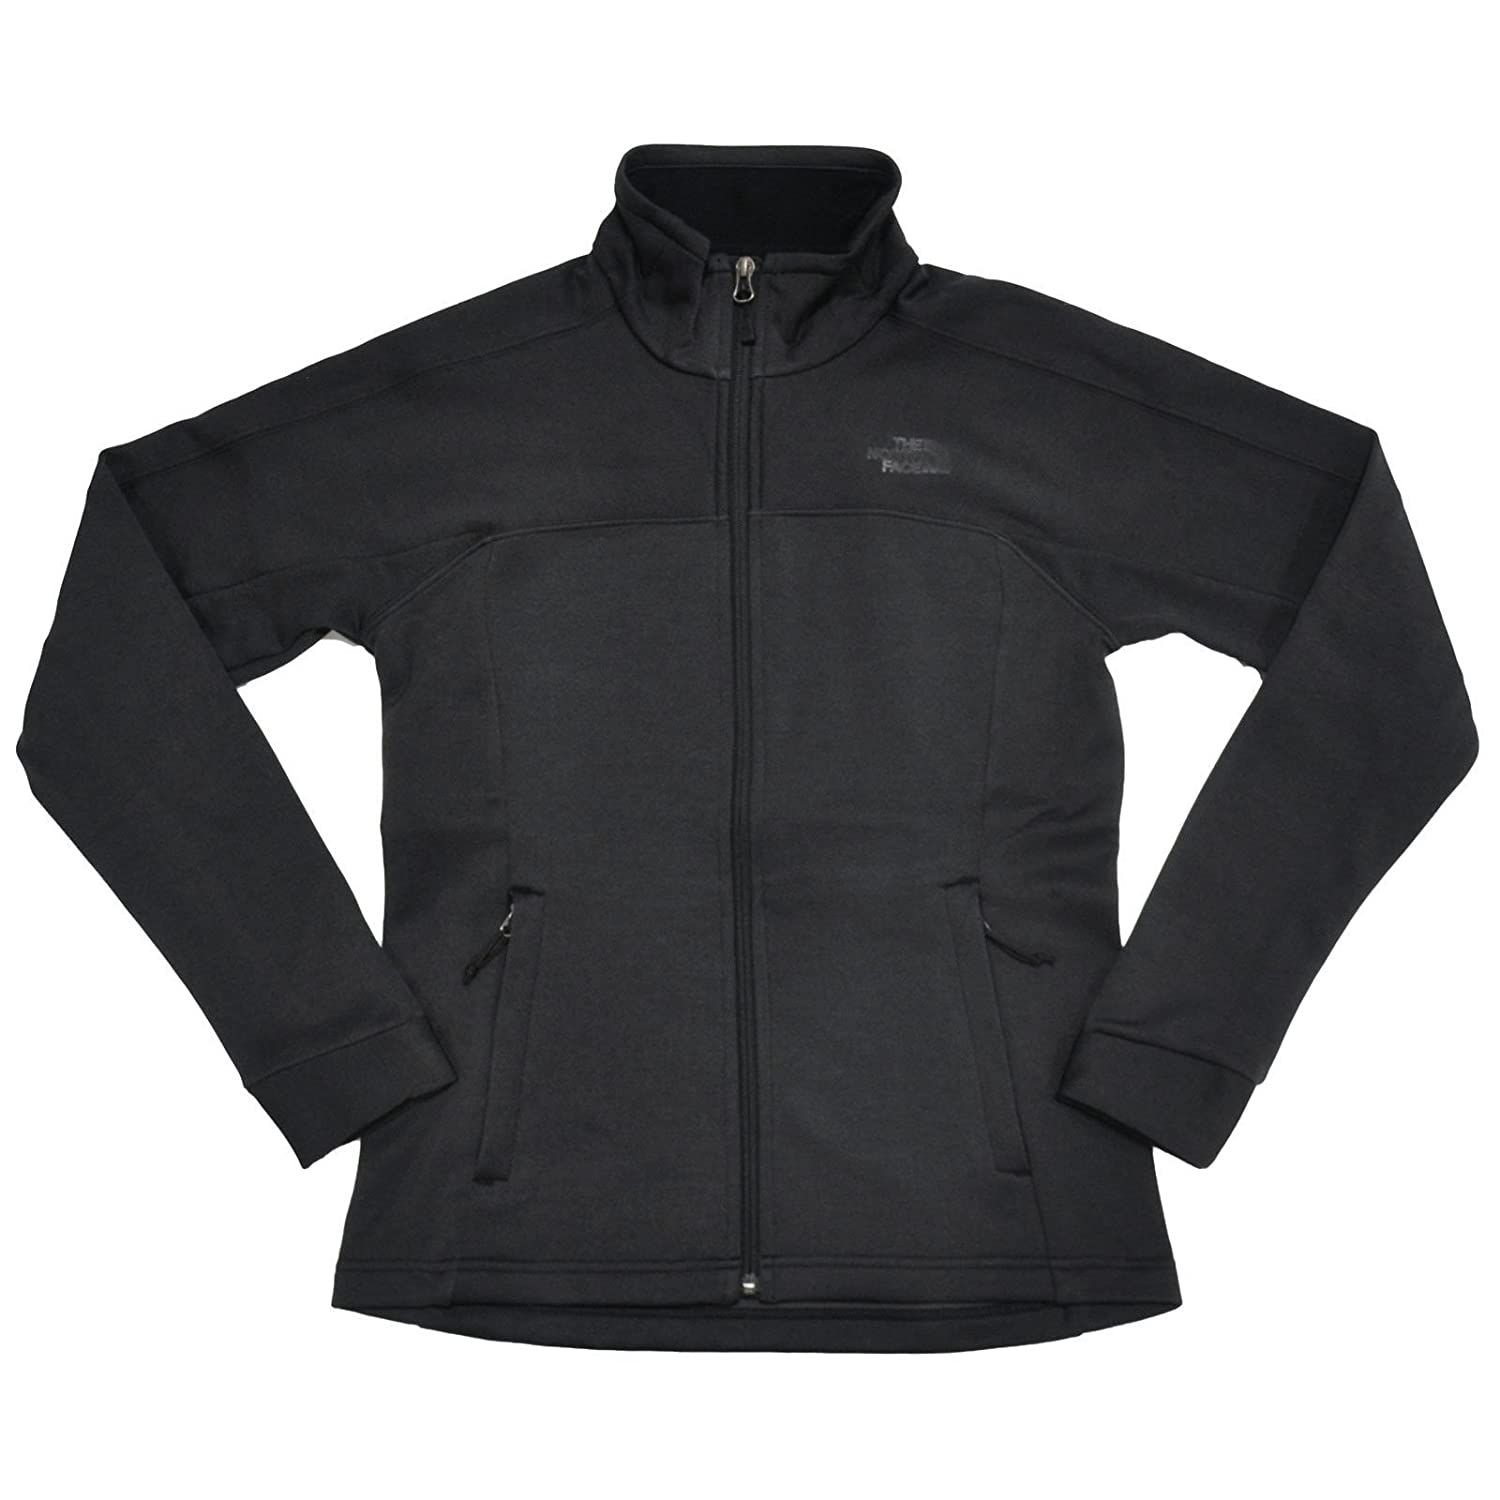 835a006d8f0d1 Top 10 wholesale North Face Fleece Jacket Womens - Chinabrands.com